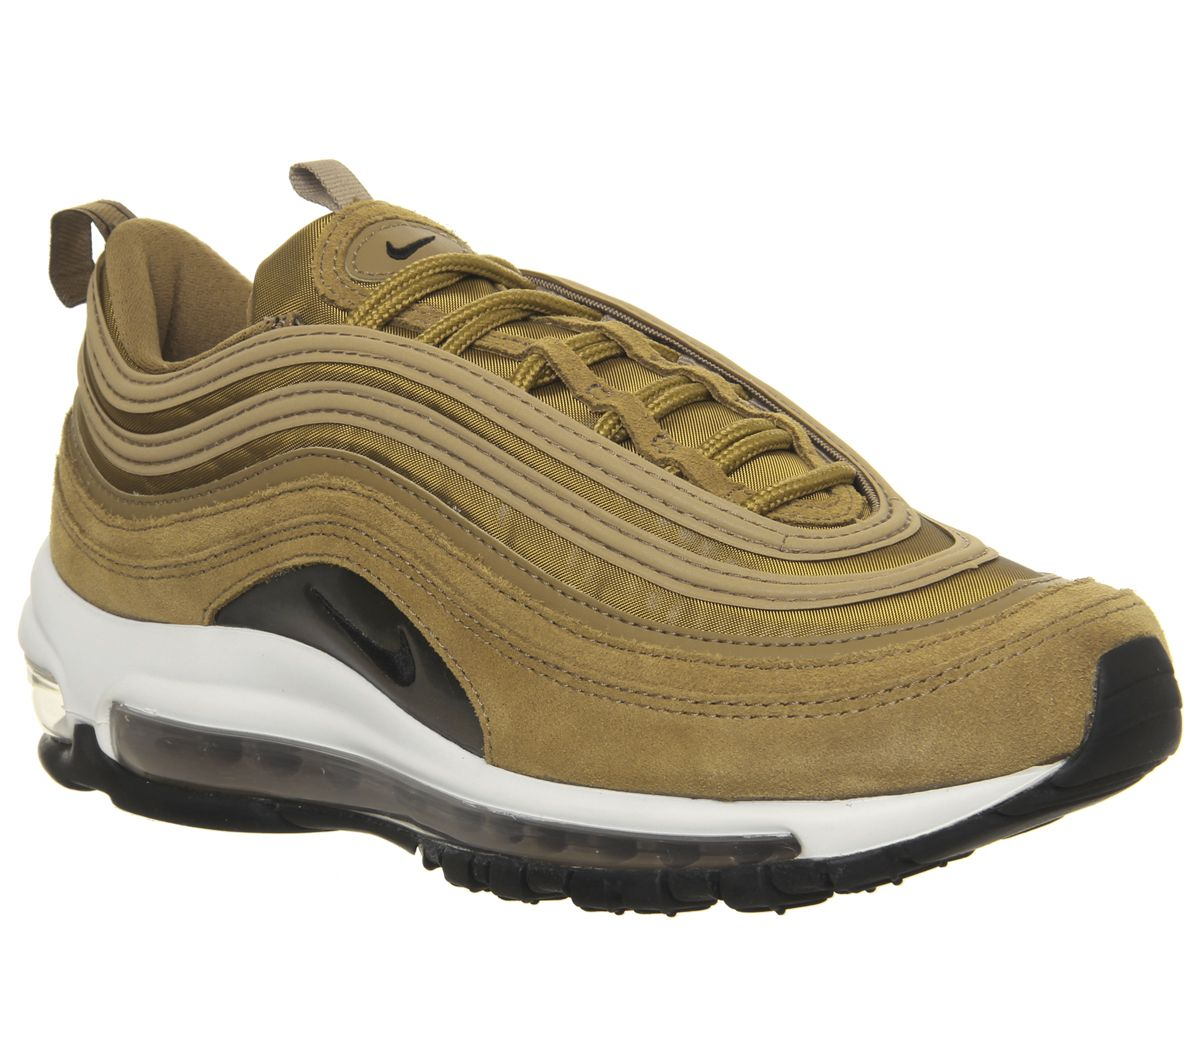 finest selection ca0b4 b5b3f Nike Air Max 97 Trainers Monarch Gel - Hers trainers